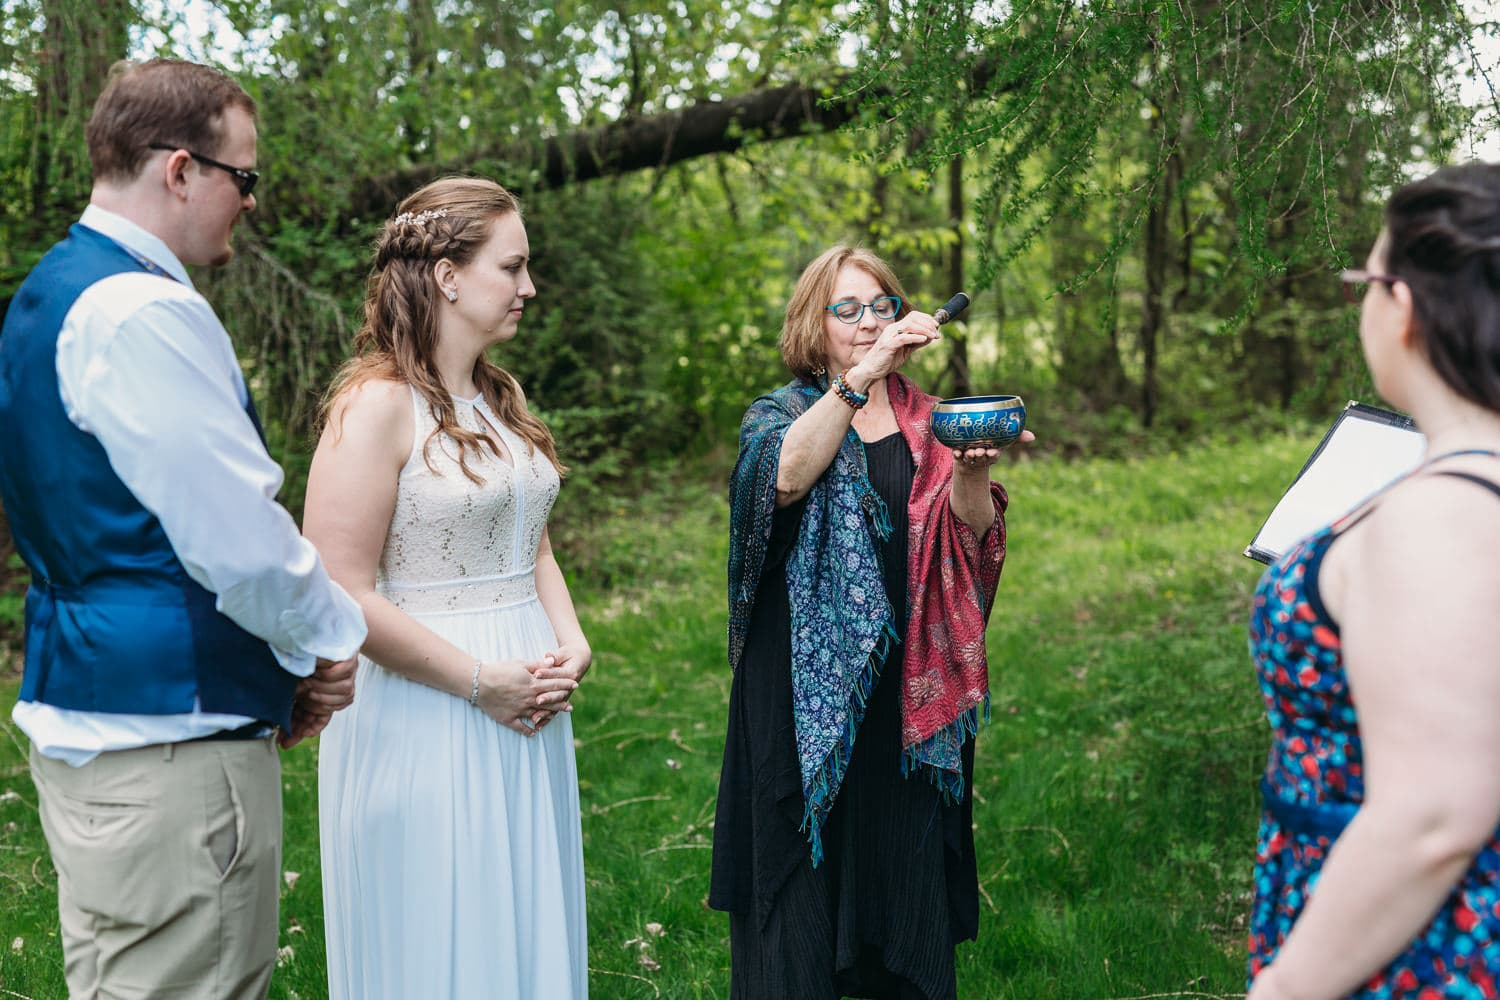 life threads celebrant abegael at campbell valley park elopement